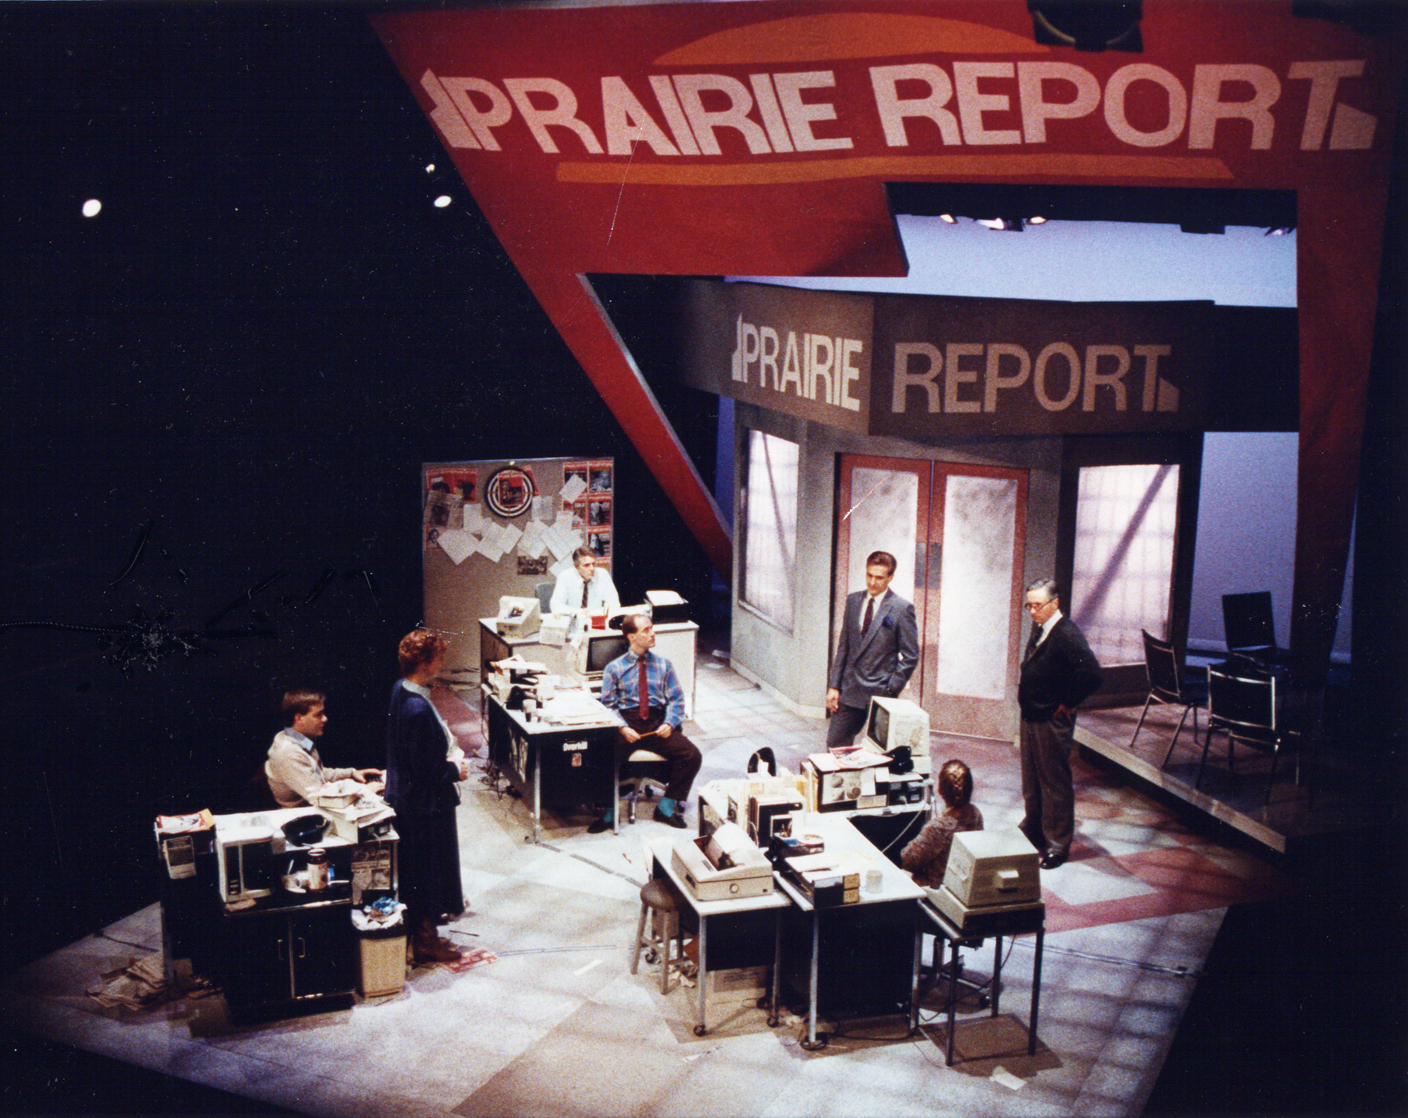 Prairie Report (October 1988) Production Image 1.jpg